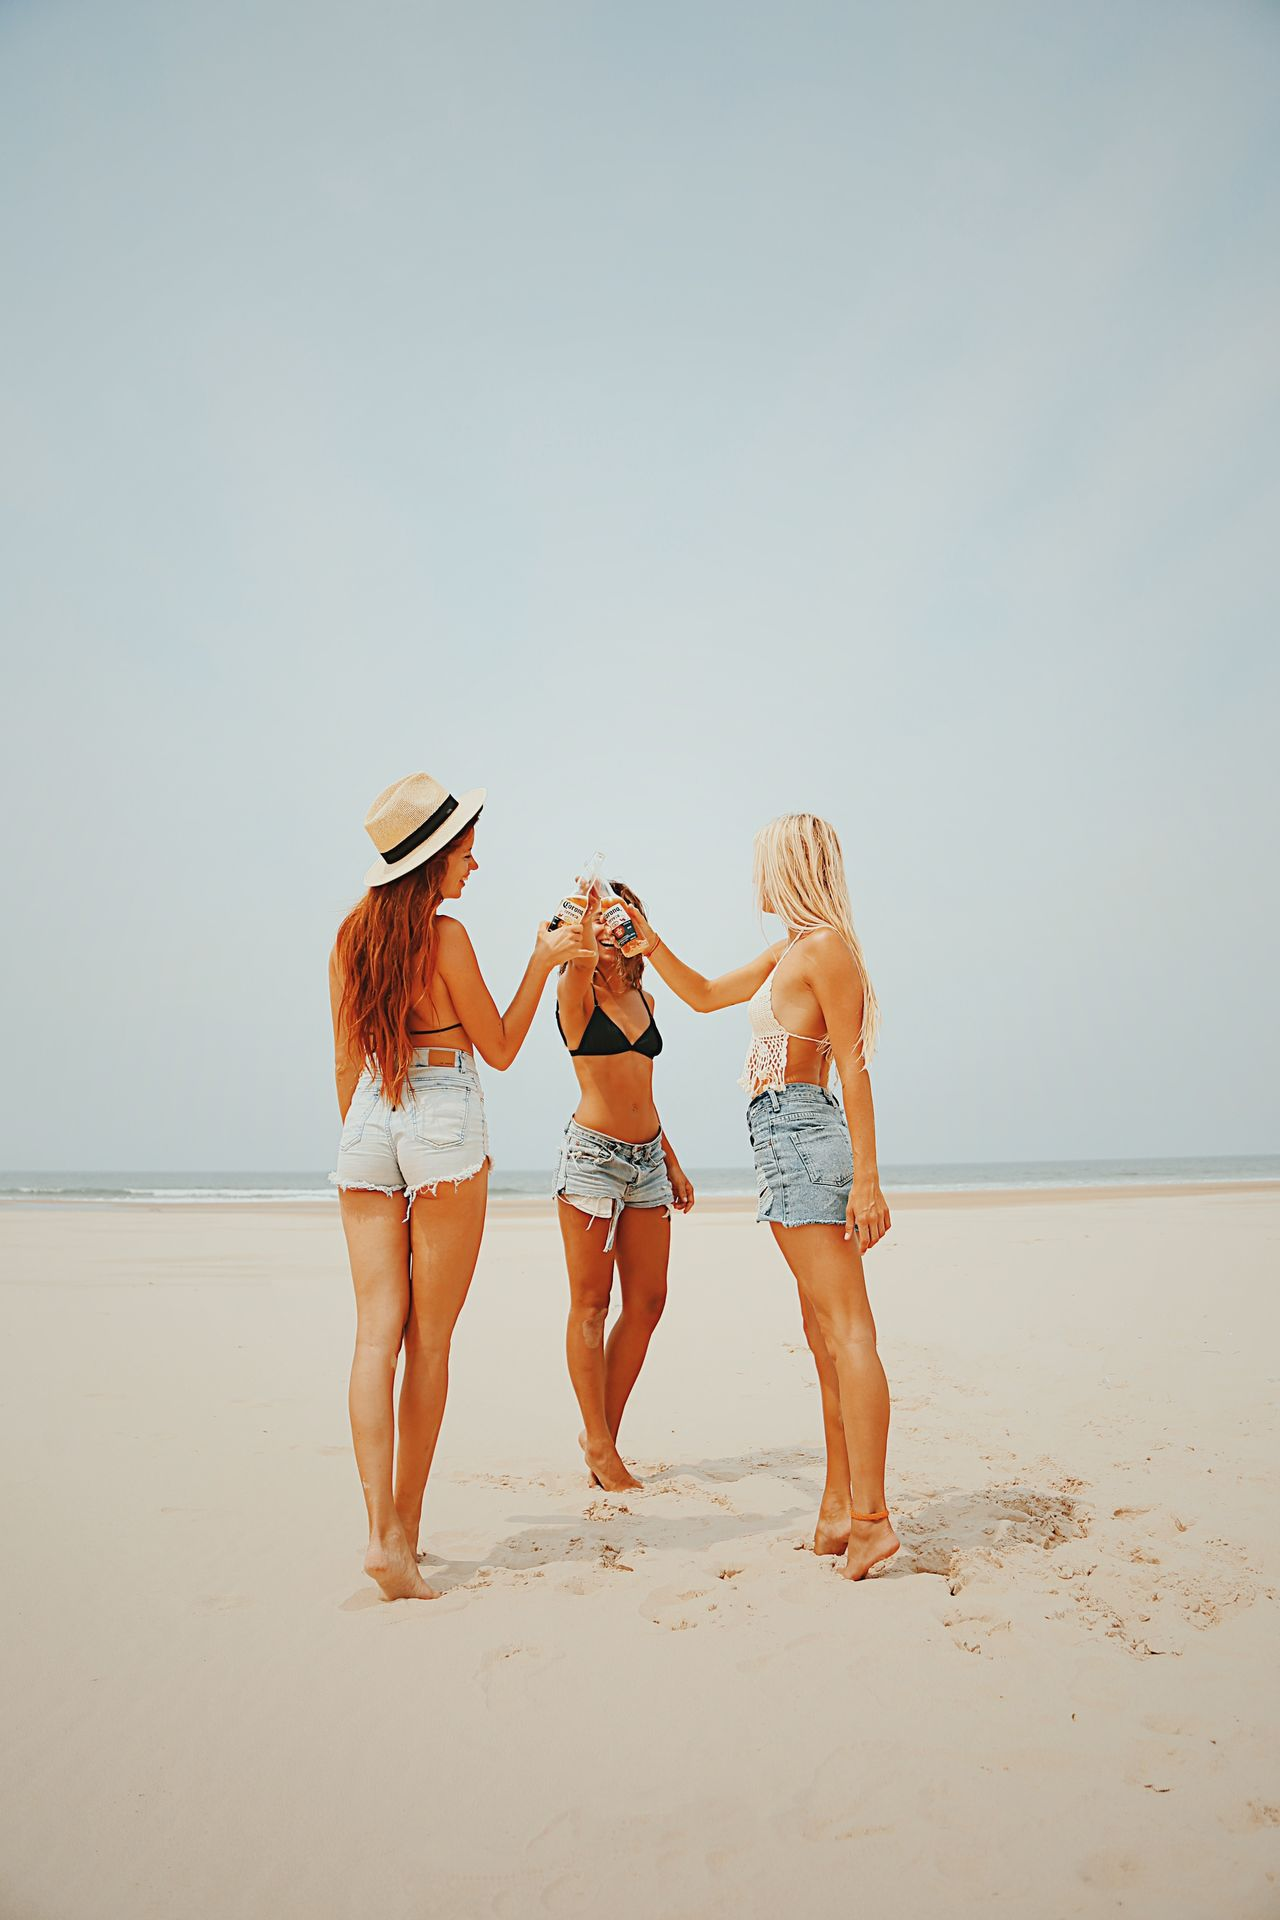 Beautiful stock photos of freundschaft, beach, real people, sand, rear view